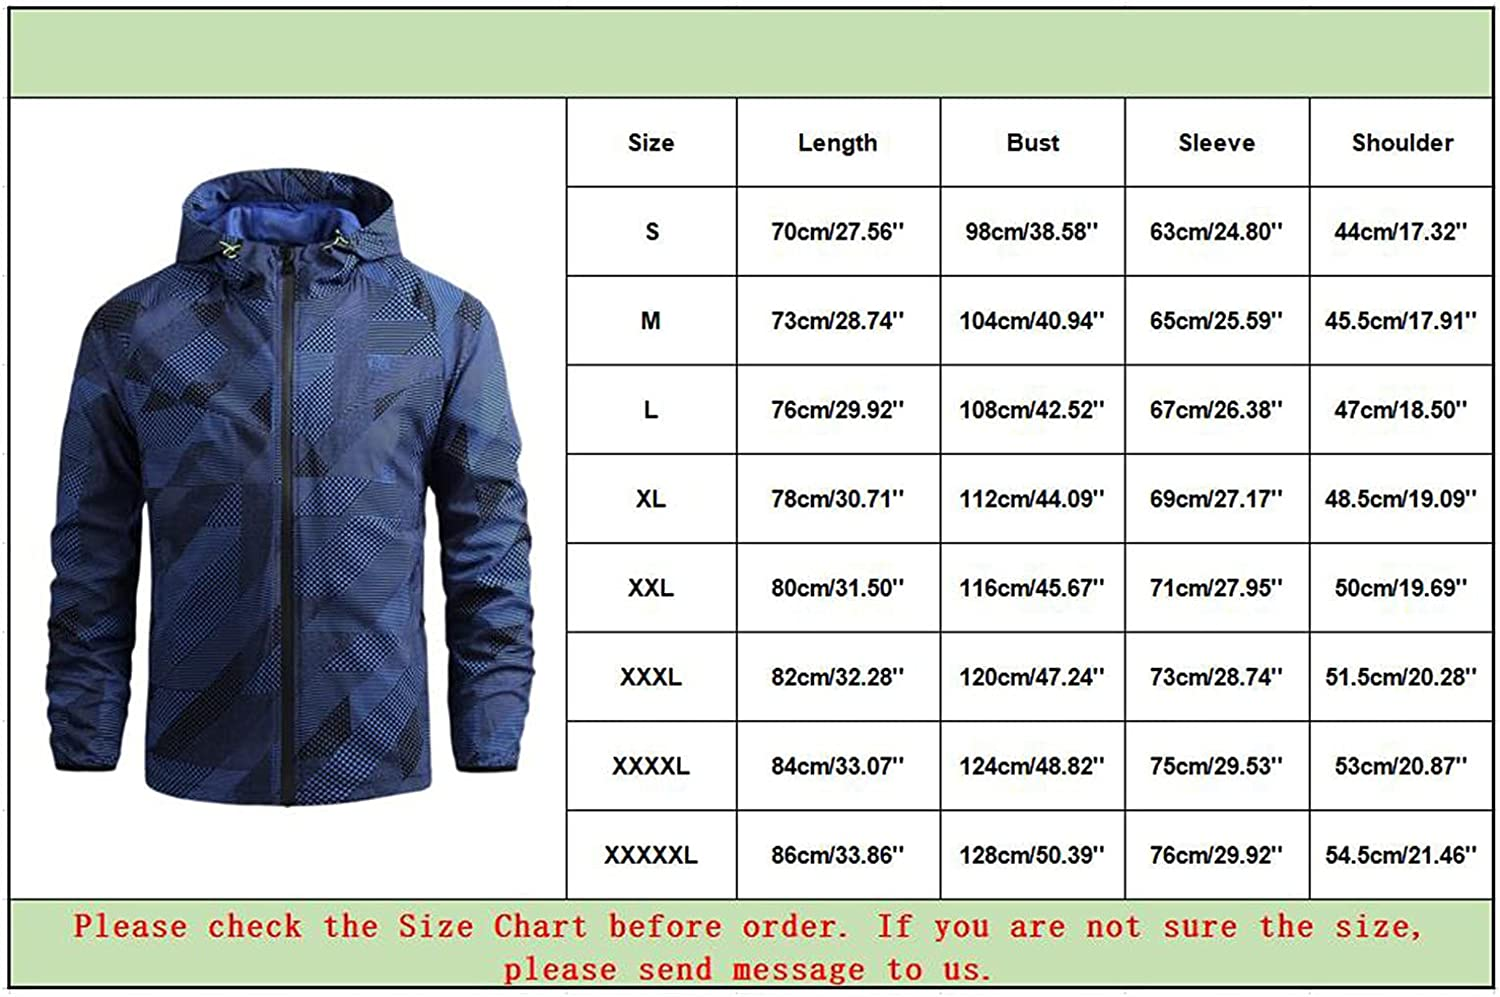 Jacket for Men Casual Printed Hooded Windproof Outdoor Thin Jacket Hiking Coat Tops Blouse Lightweight Outwear